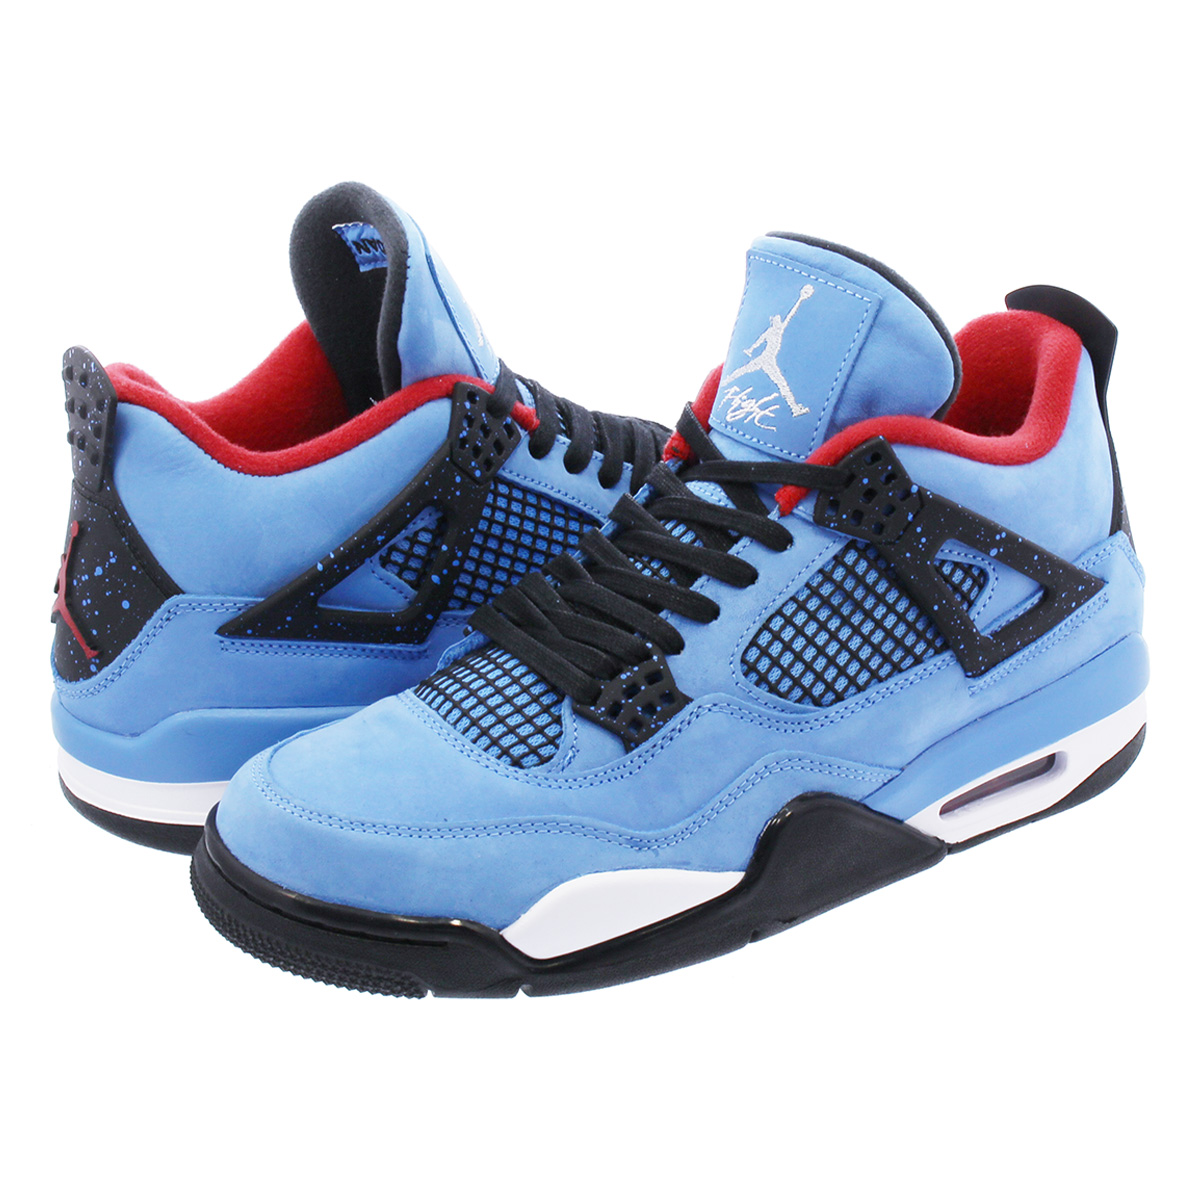 official photos 6b3a3 61c0d NIKE AIR JORDAN 4 RETRO Nike air Jordan 4 nostalgic Travis Scot UNIVERSITY  BLUE/VARSITY RED/BLACK 308,497-406